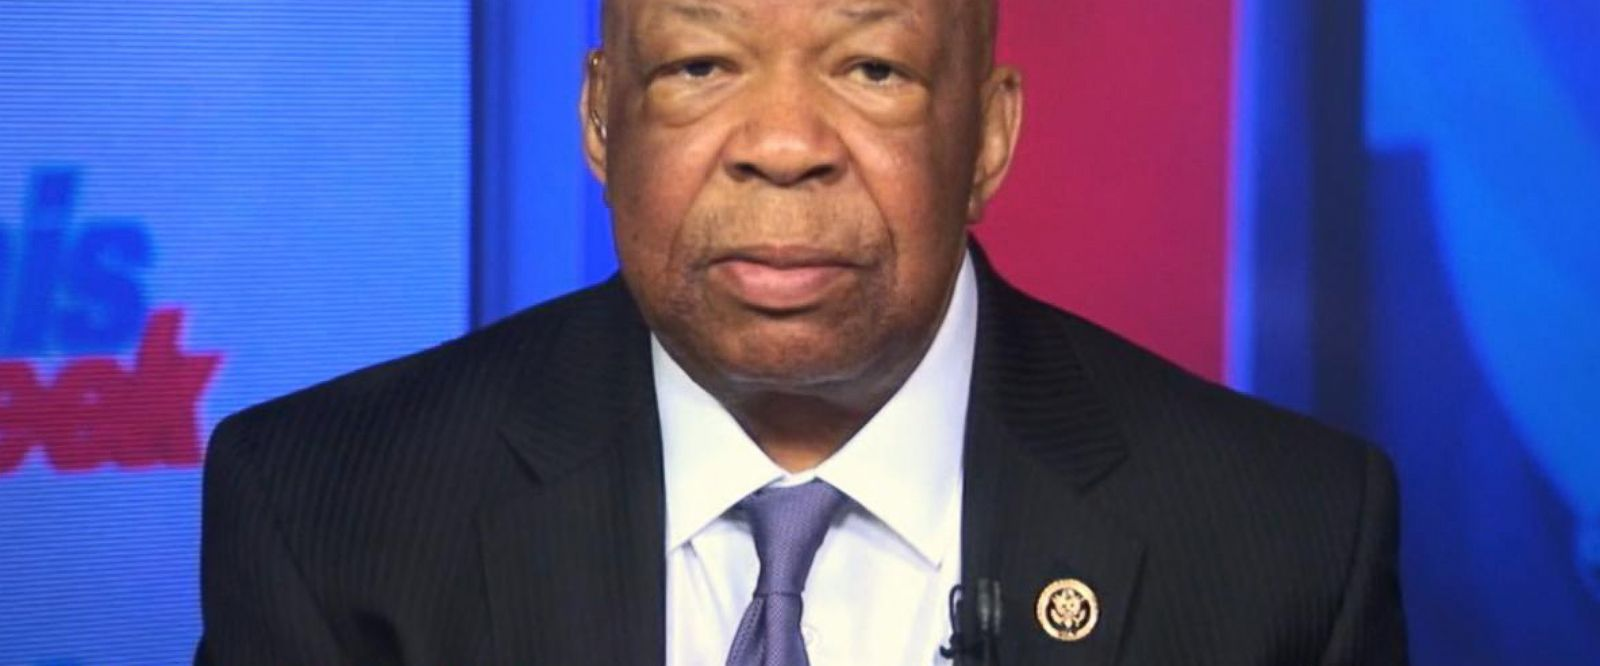 VIDEO: Rep. Elijah Cummings on President Trumps first 50 days in office